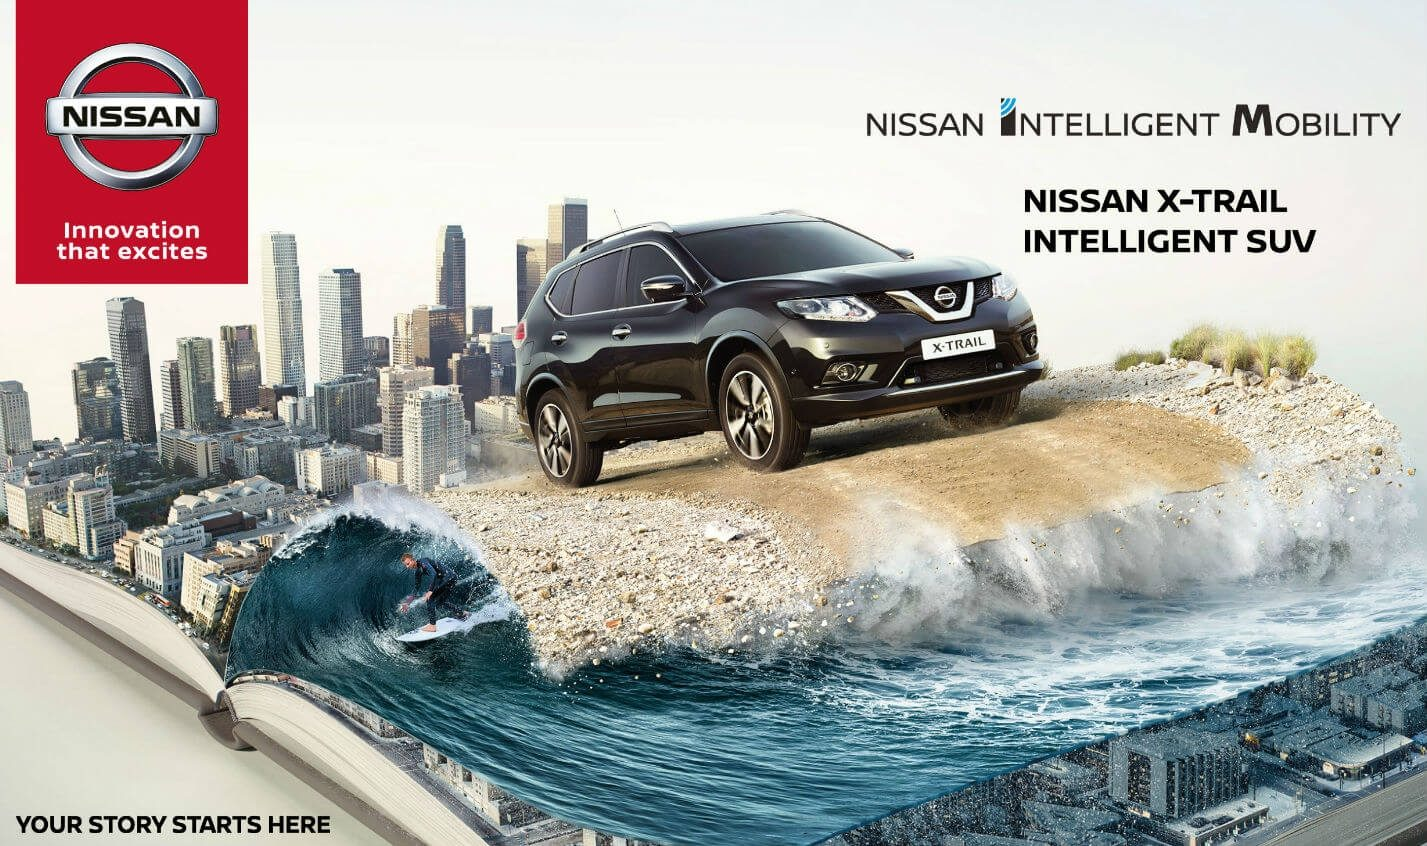 NISSAN X-TRAIL INTELLIGENT SUV